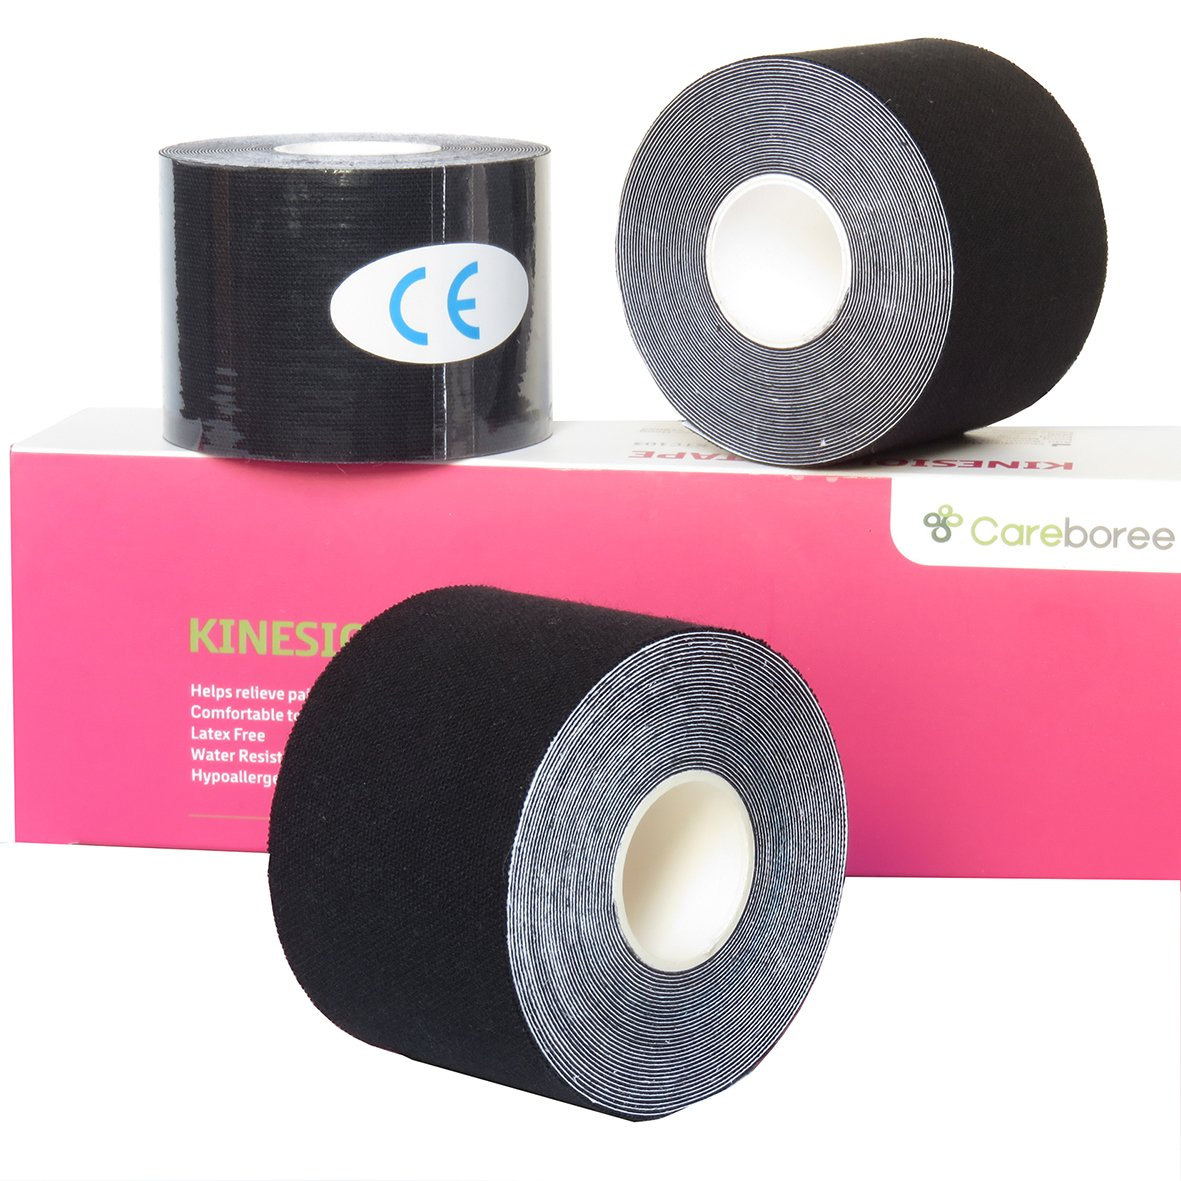 Careboree Kinesiology Tapes,Therapeutic Sport Tape,Pain Relief, Muscle Support for Knee, Shoulder & Ankle; Breathable,Water Resistant & Adhesive; Uncut Roll